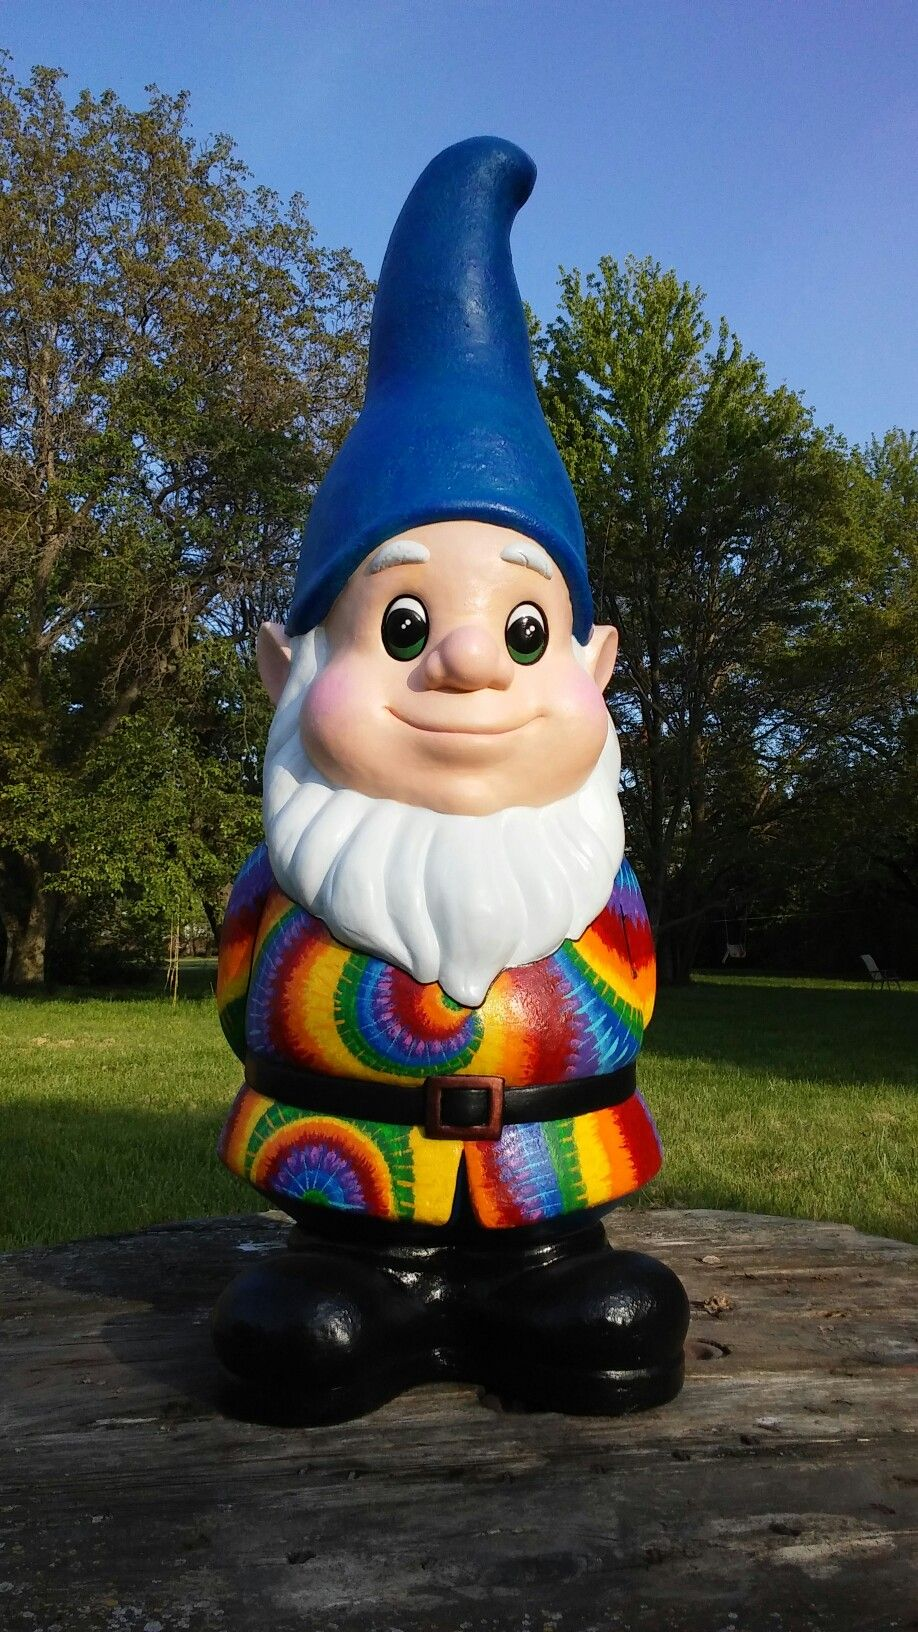 3 Foot Tall Tie Dye Garden Gnome Repainted Generic Which Had Faded Down To Almost No Color After Only One Season